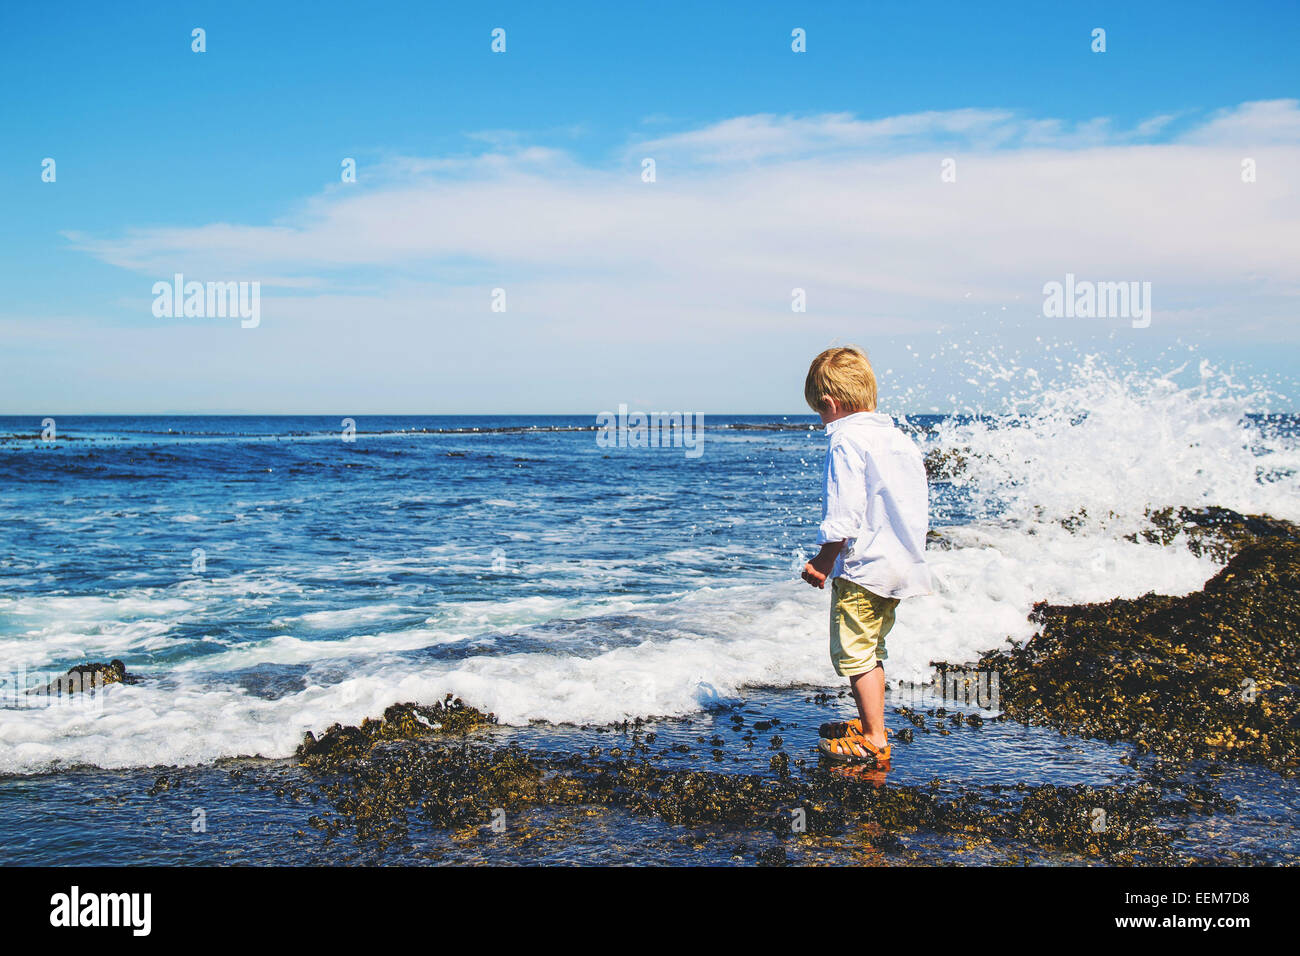 Young boy (4-5) getting splashed by waves - Stock Image